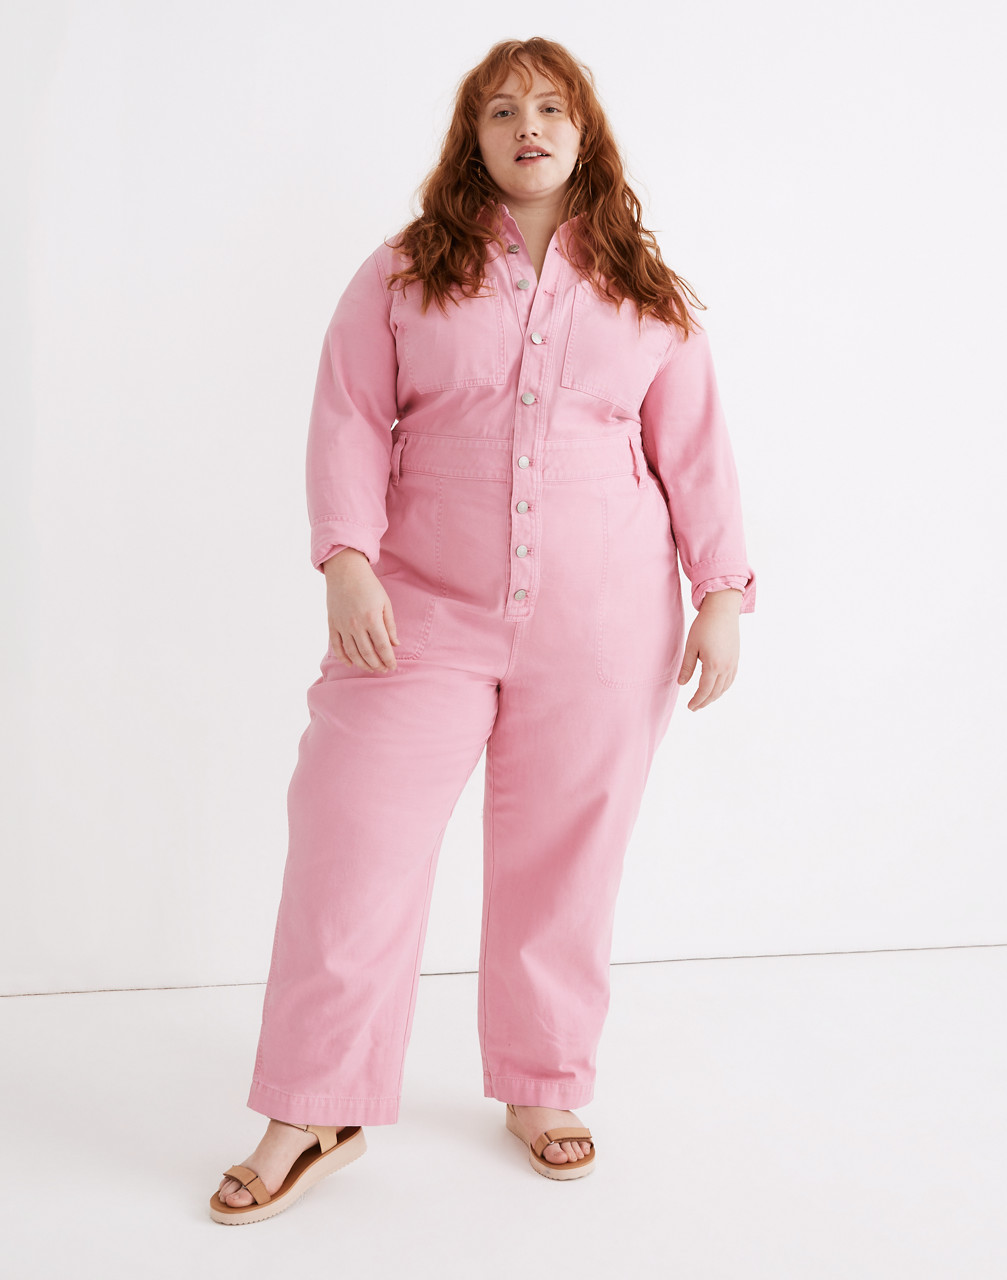 70s Jumpsuit   Disco Jumpsuits, Sequin Rompers Garment-Dyed Relaxed Coverall Jumpsuit $148.00 AT vintagedancer.com